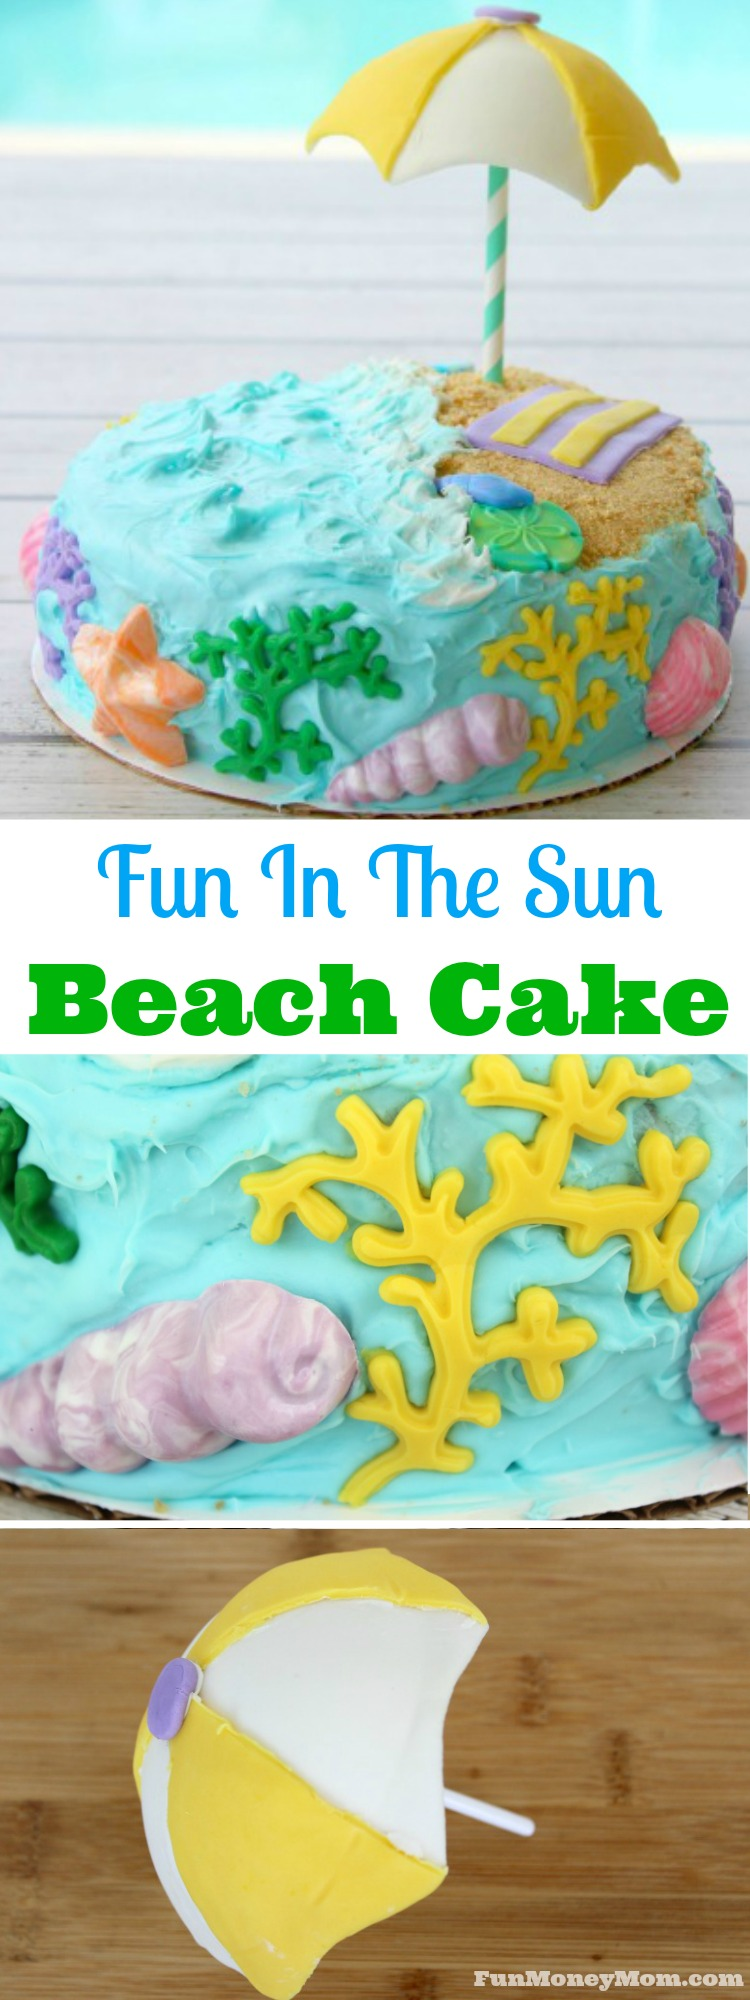 Having a beach themed party? This beach cake with candy shells and beach umbrellas is going to be perfect!